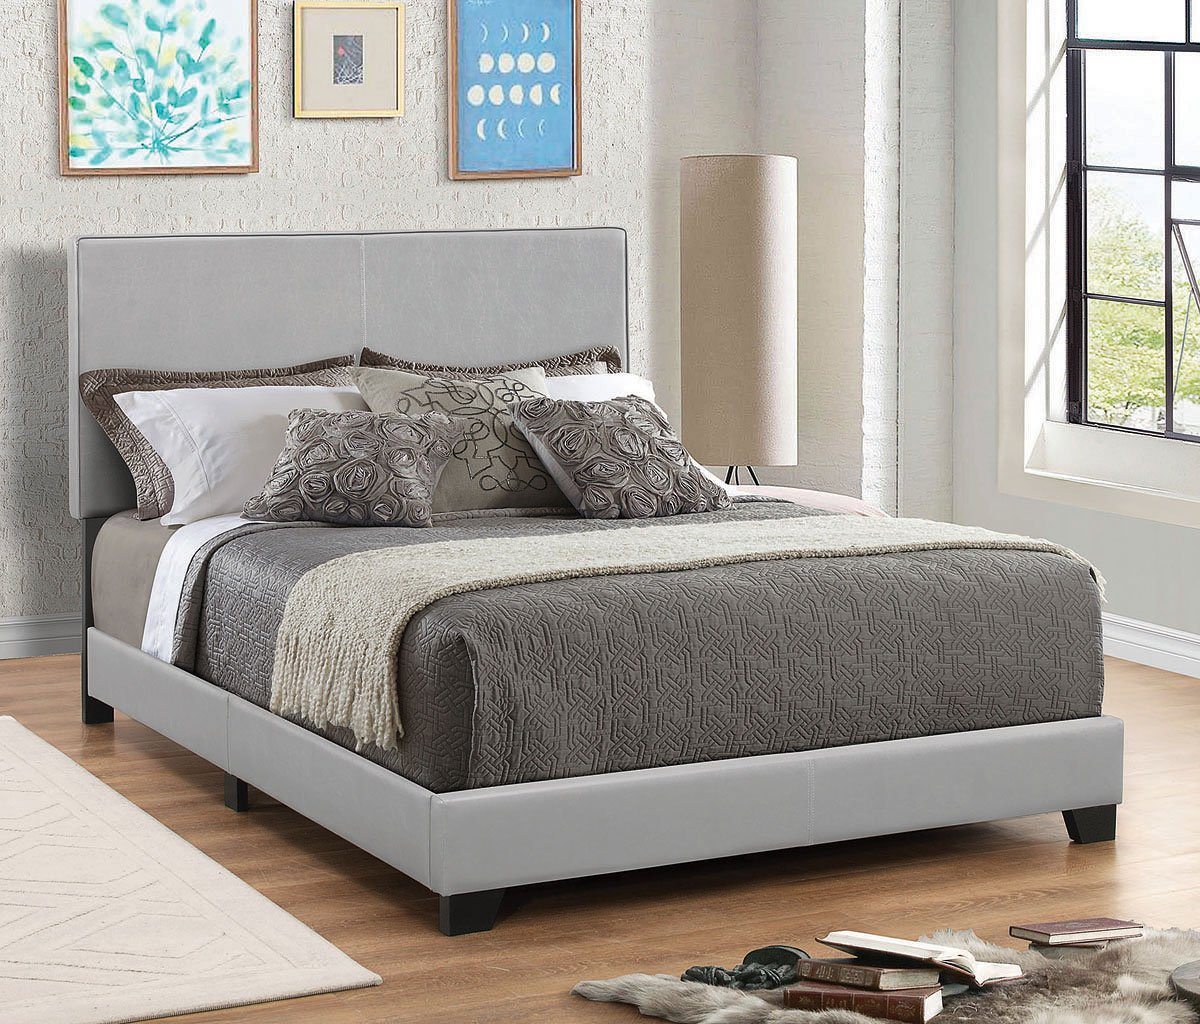 Dorian Upholstered Bed (Grey) By Coaster Furniture